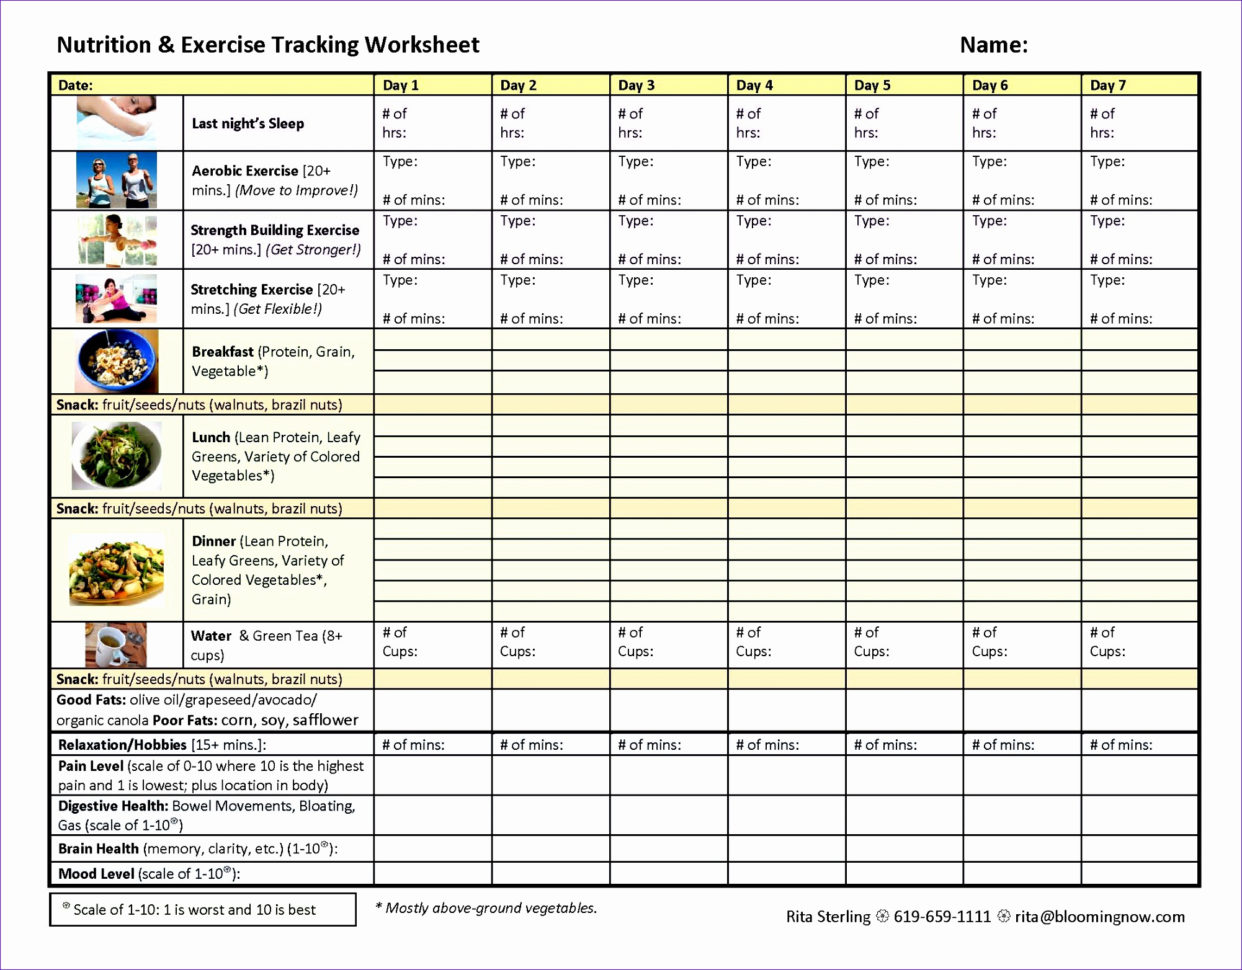 Renaissance Diet Spreadsheet Intended For Diet And Weight Training. Weight Training Excel Sheet Fresh